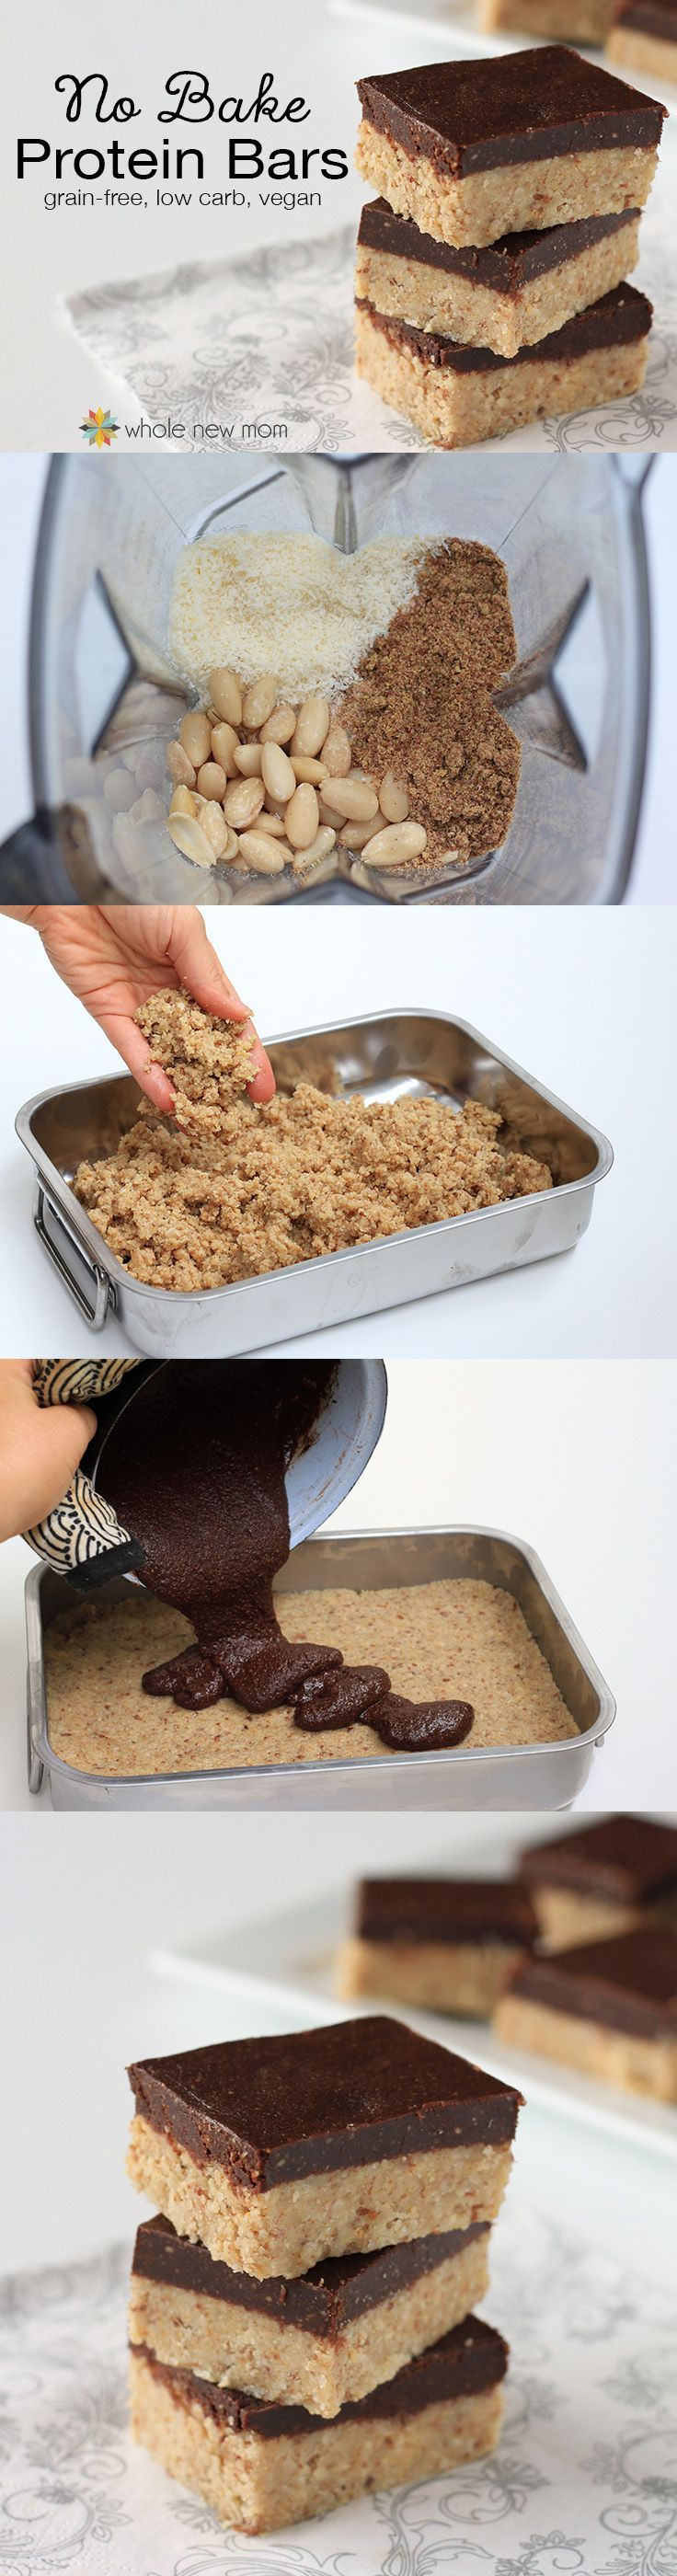 These Homemade Protein Bars are sugar, soy, grain, dairy, and egg-free, but loaded with yumminess! Stop spending a fortune on store-bought bars and make your own :)!